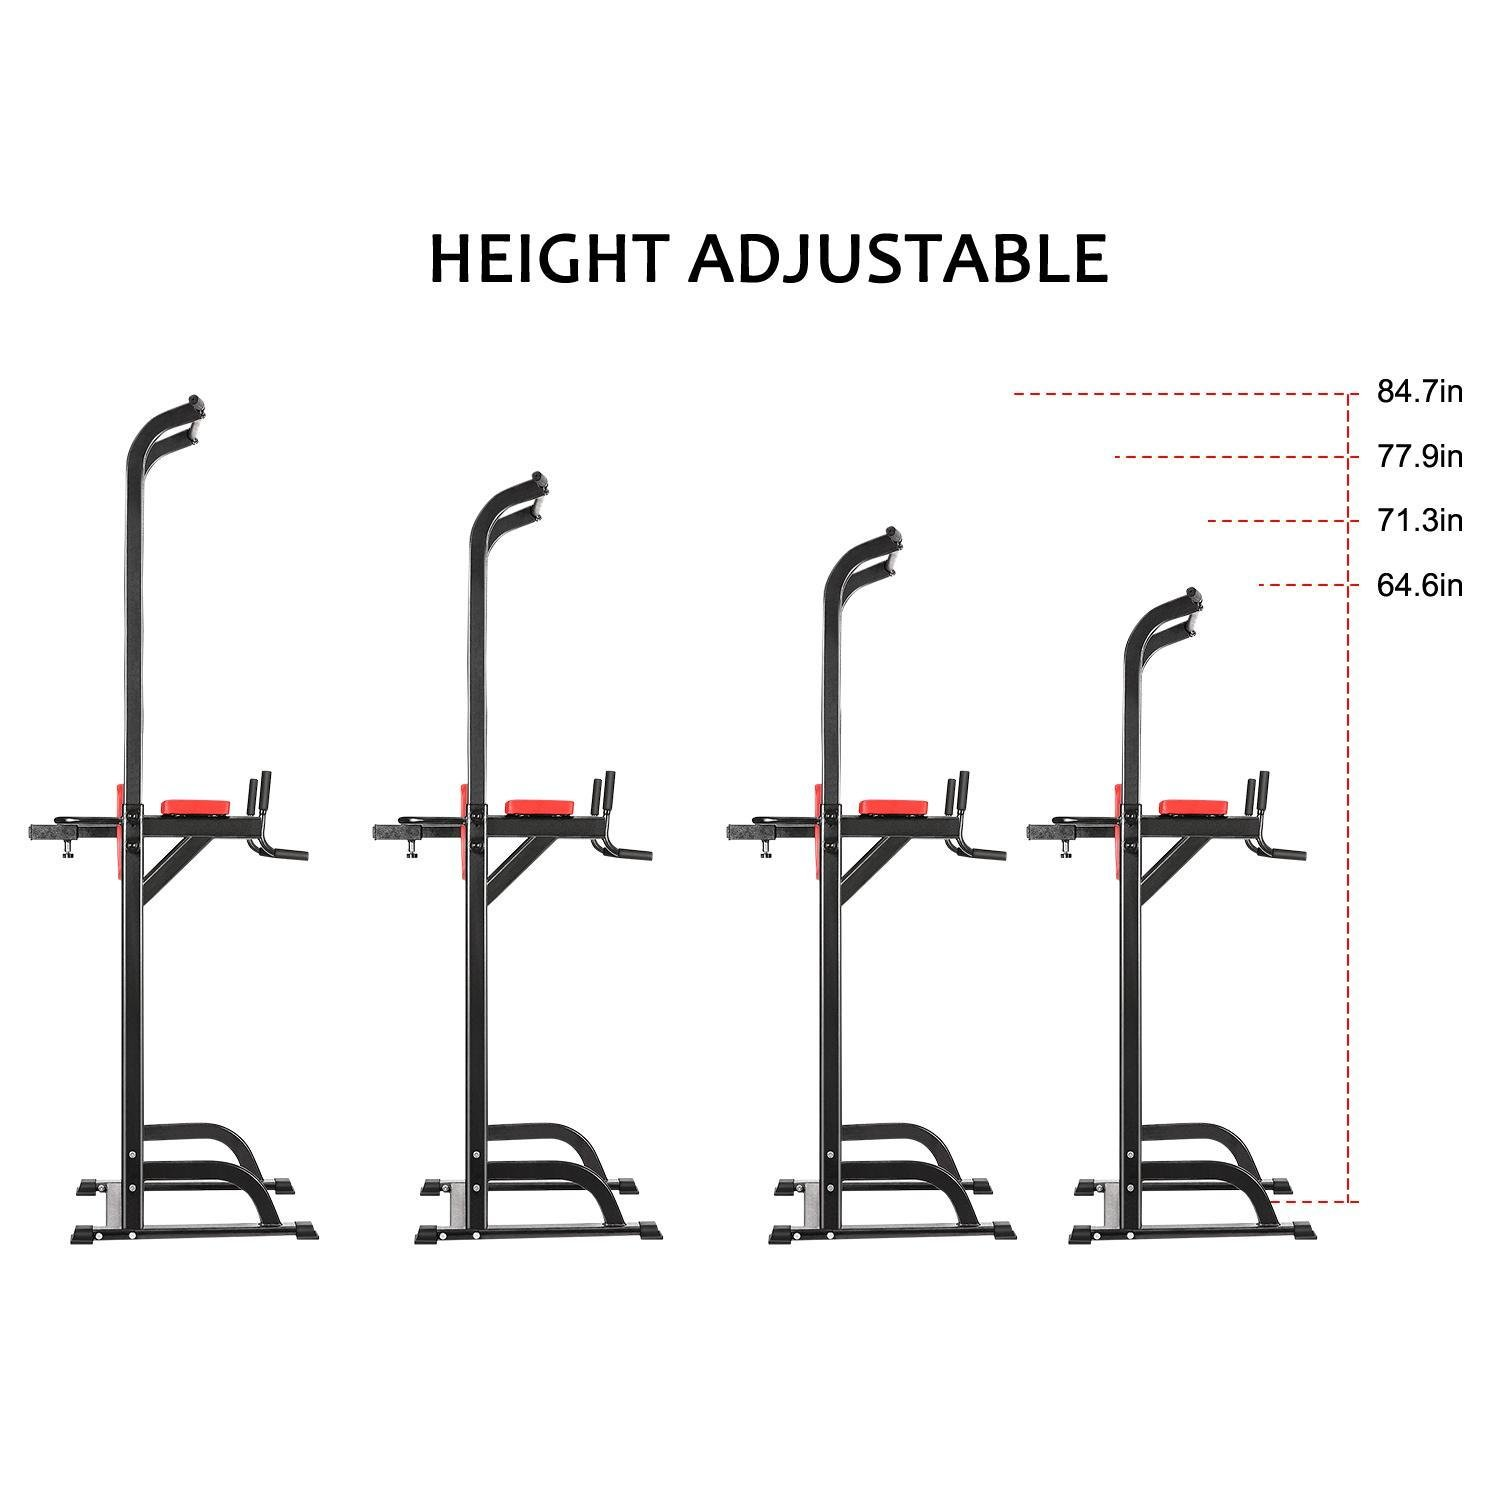 Kaluo Power Tower Adjustable Height Multi-Function Strength Training Fitness Workout Station Pull Up Bar(US STOCK) by Kaluo